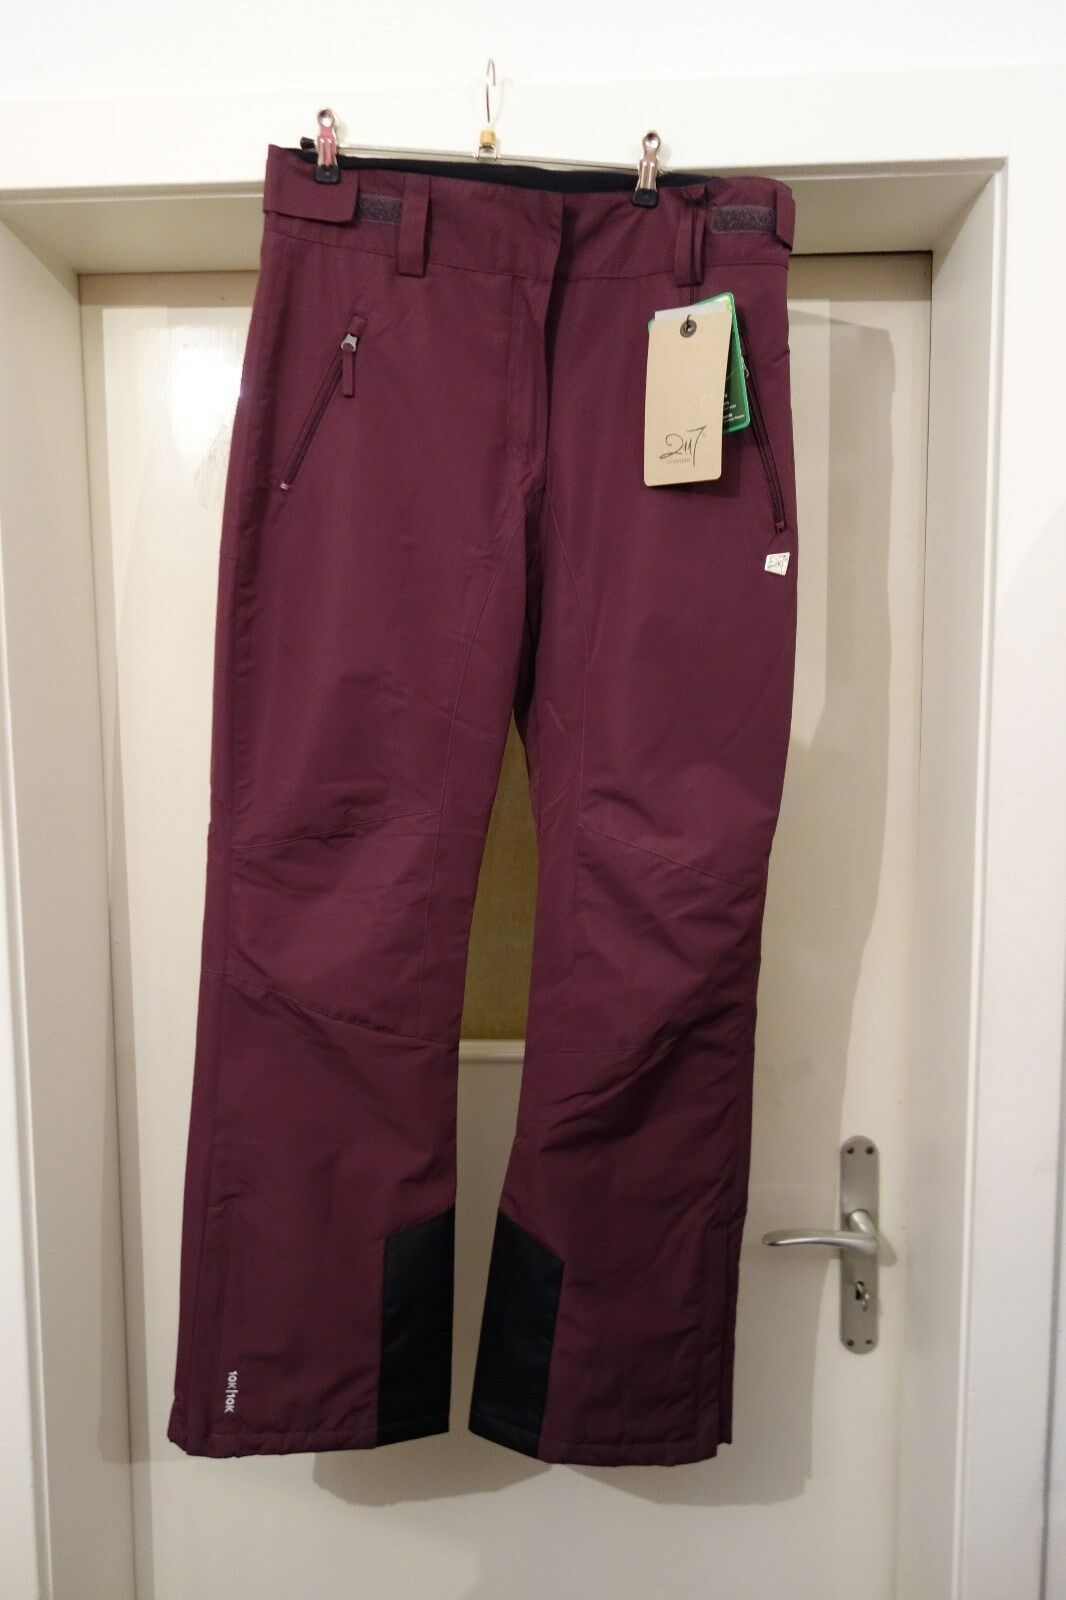 2117 of  Sweden Dorris Light Padded Ski Pant Stalon - Skihose, Größe 38  convenient